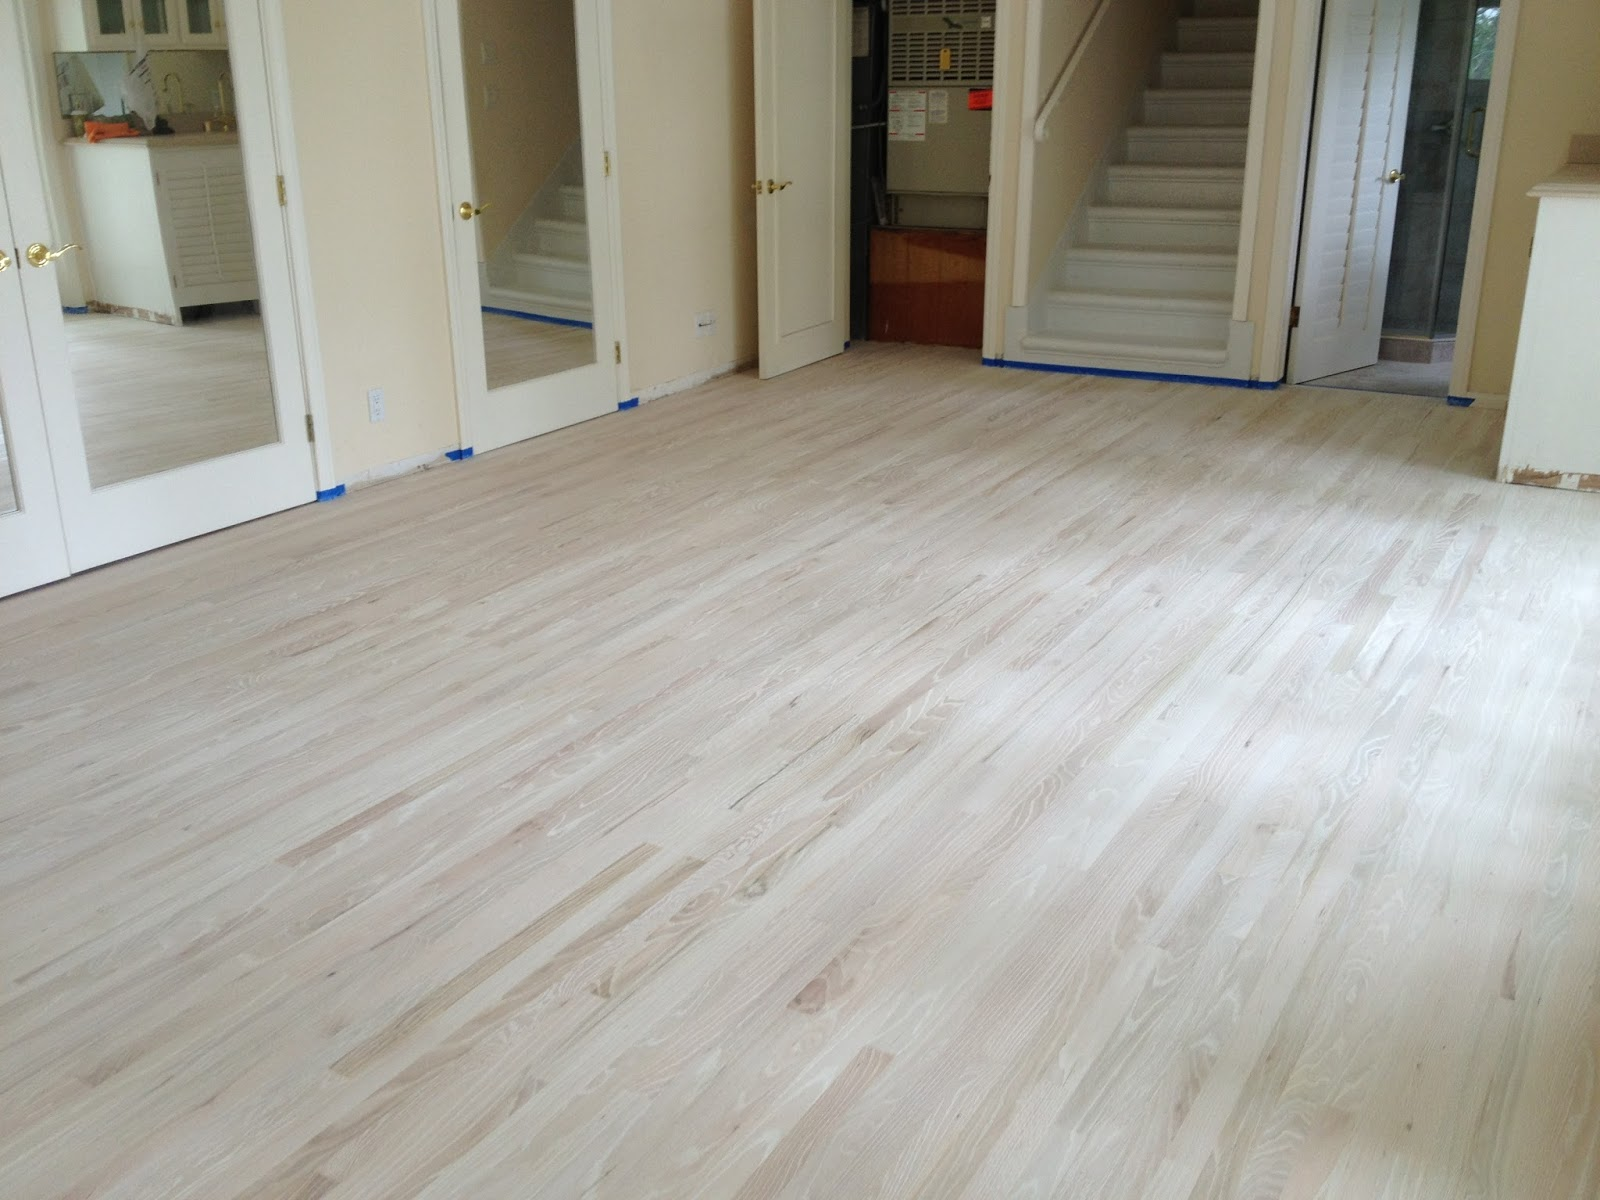 White Washed / Bleached Wood Flooring